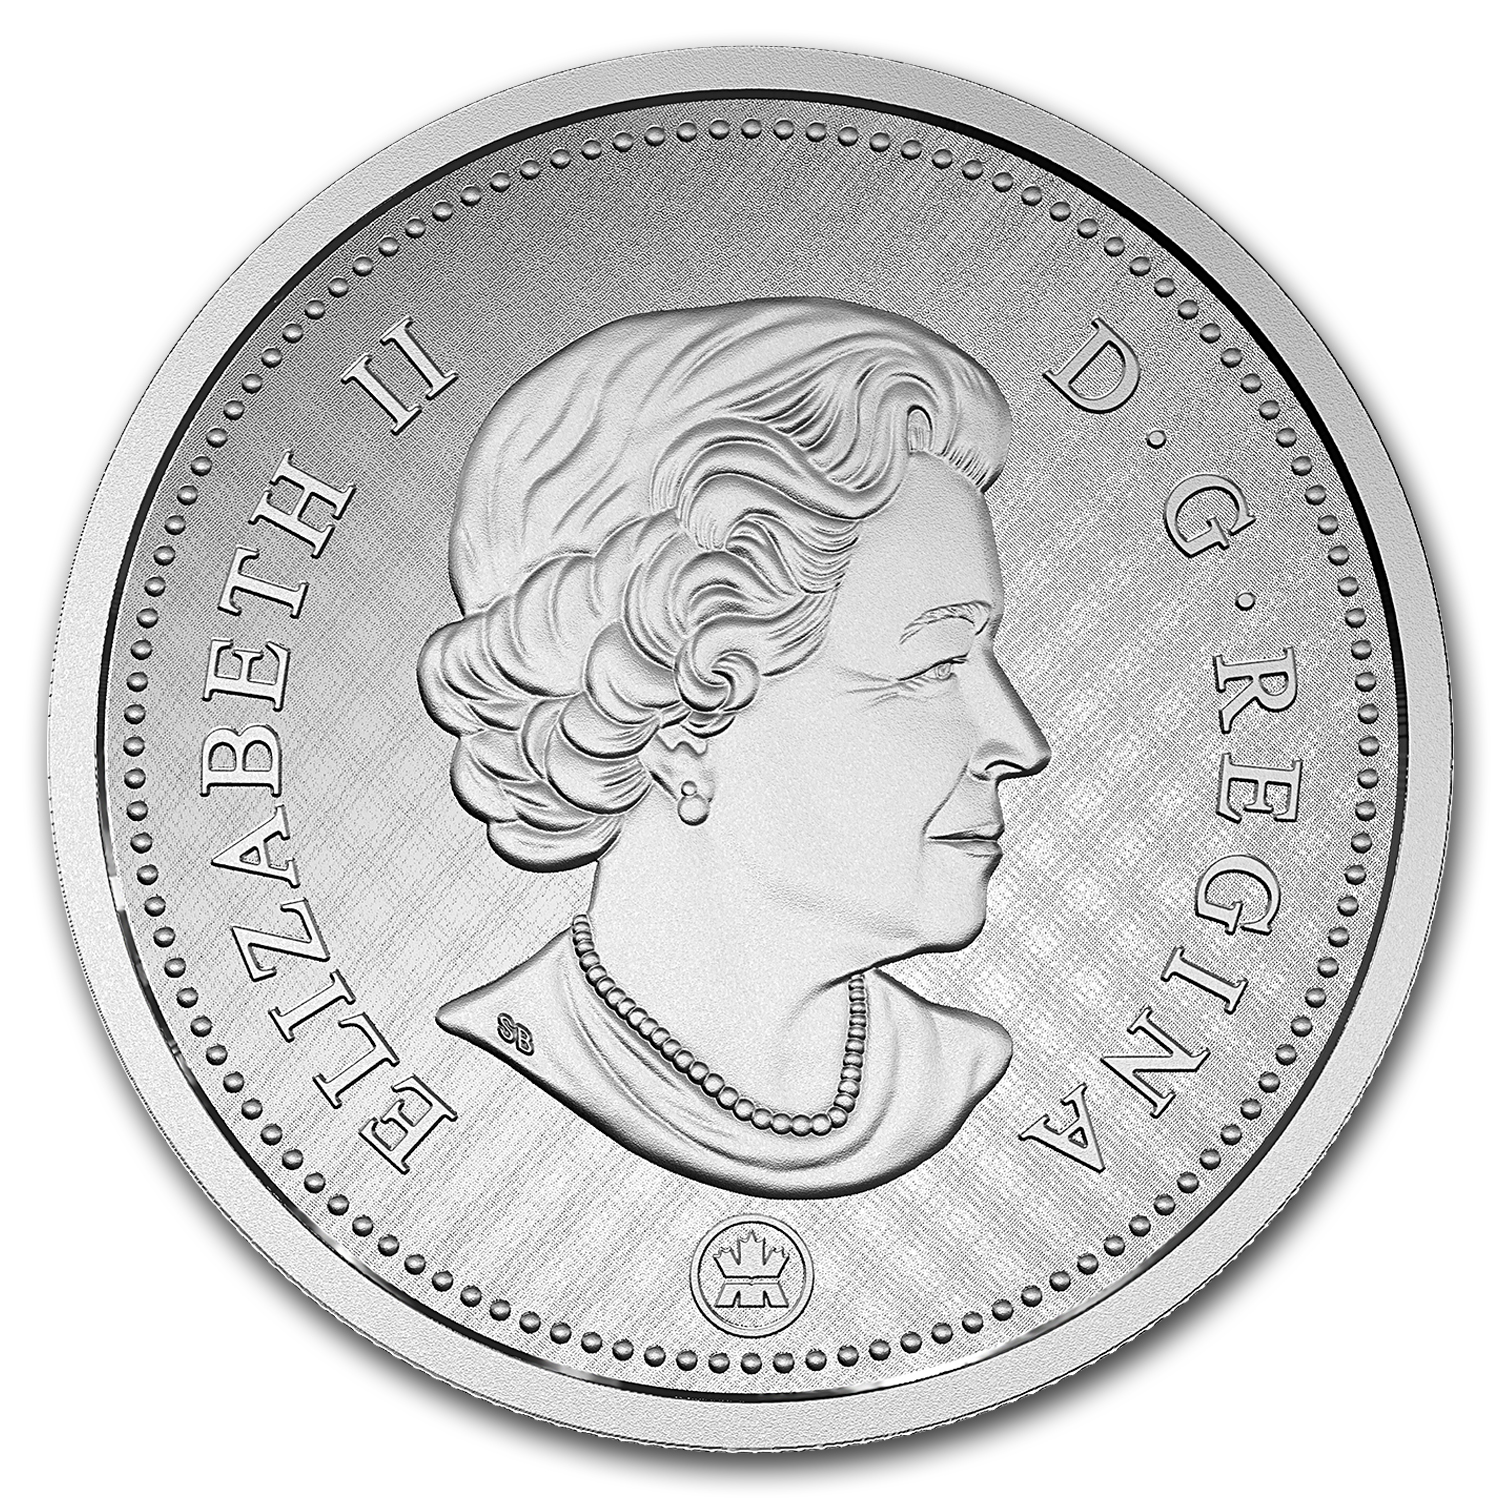 2016 Canada 5 oz Silver $1 Big Coin Series: 5 Cent Coin